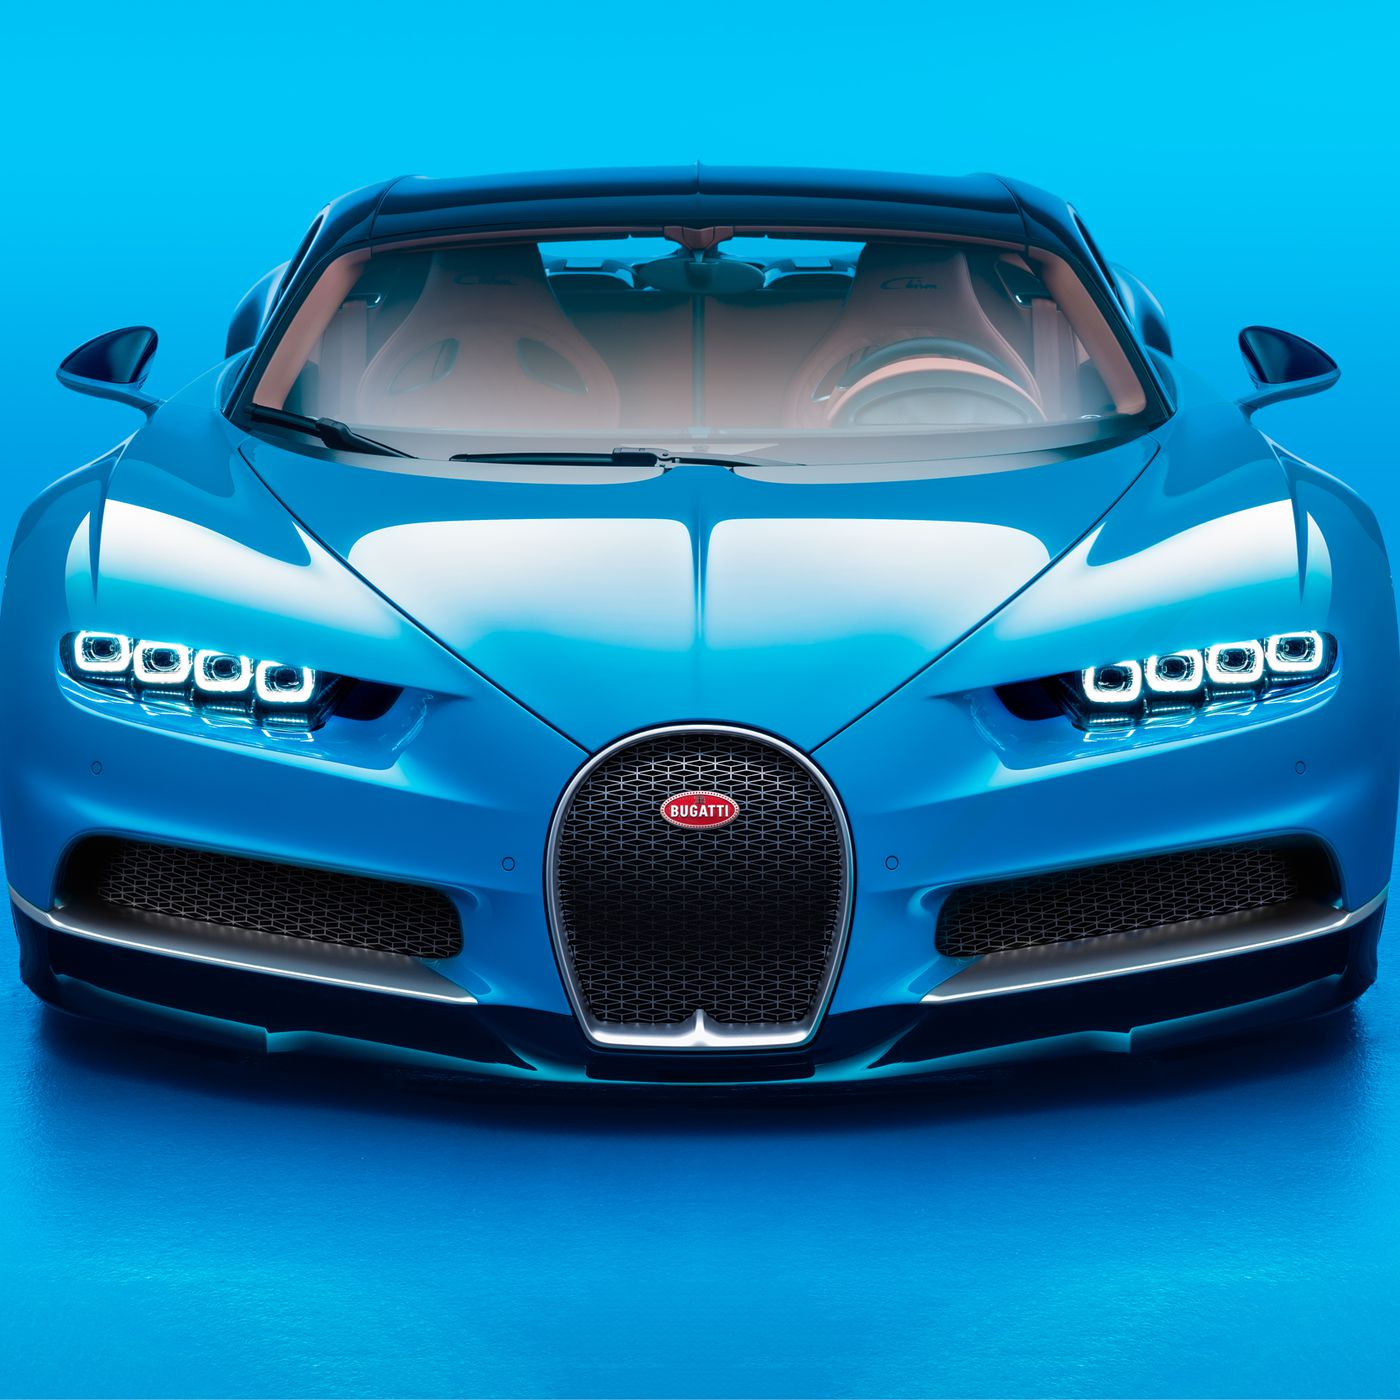 Bugatti S Chiron Is The Beastly Faster Than Fast 1 500hp Veyron Successor The Verge